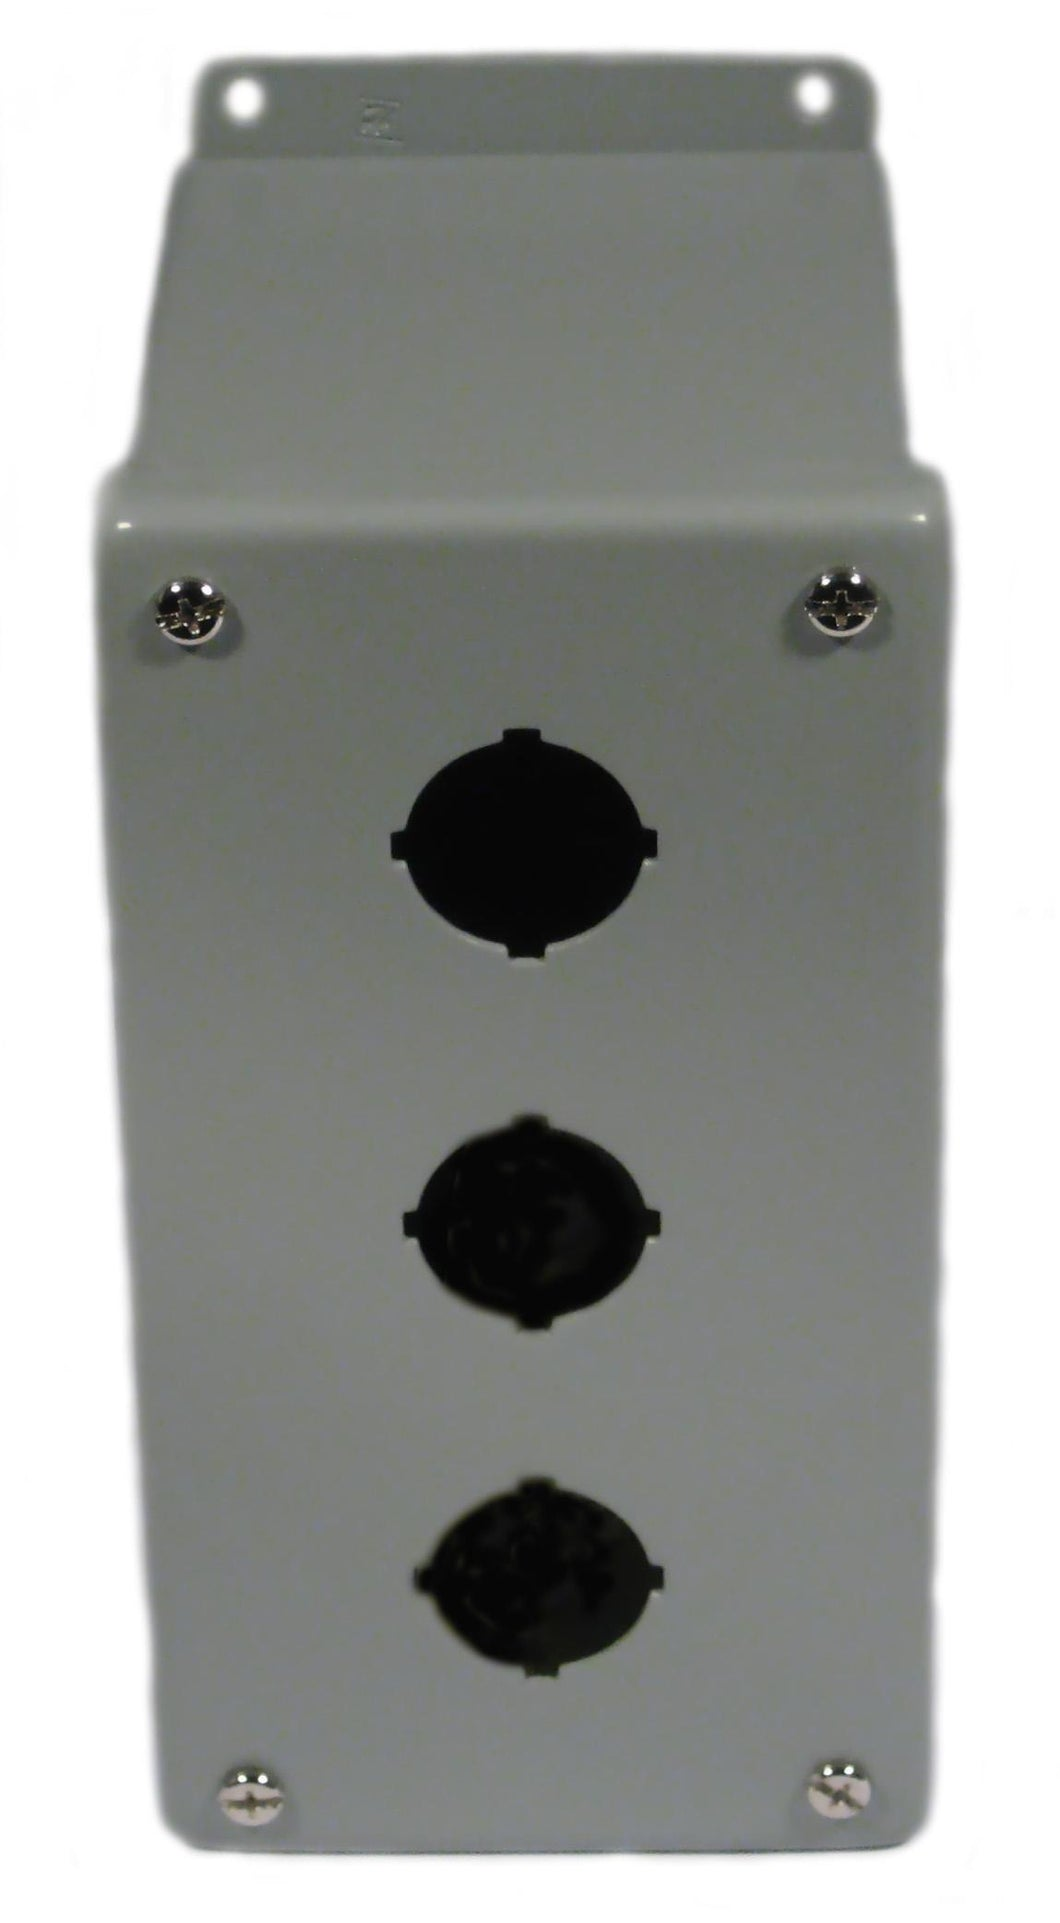 nVent Hoffman E3PBX Enclosure, Pilot Device, 30 mm, 3 Hole, Steel, Type 12/13 nVent Hoffman E3PBX